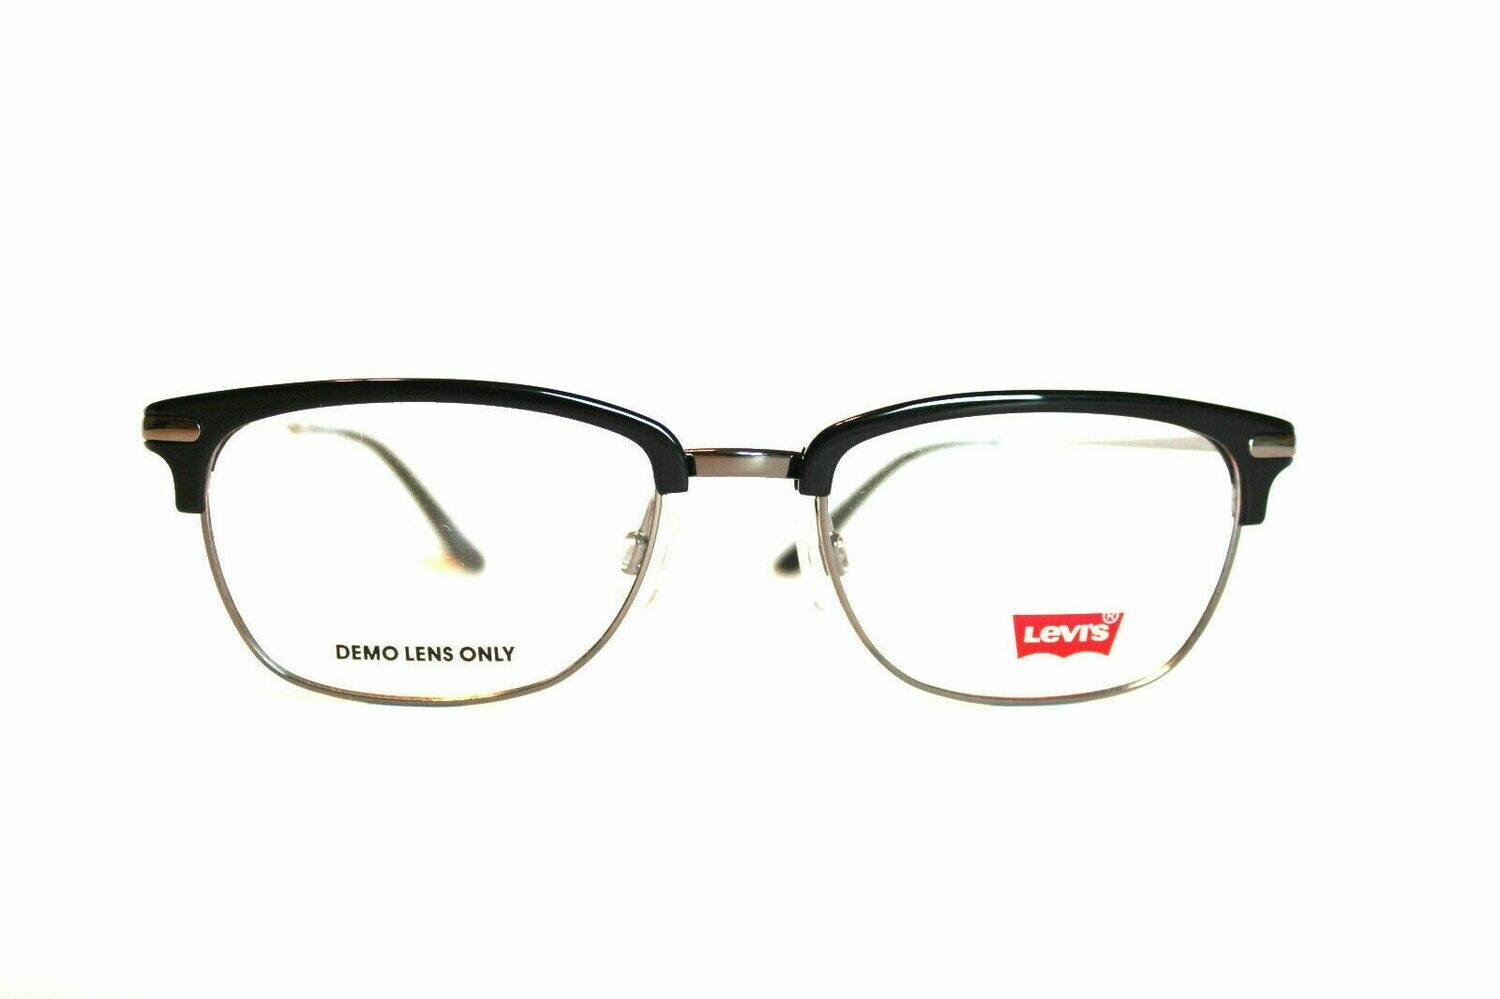 Authentic and New Levi's LS112 eyeglass frame in Black Levi's Case included